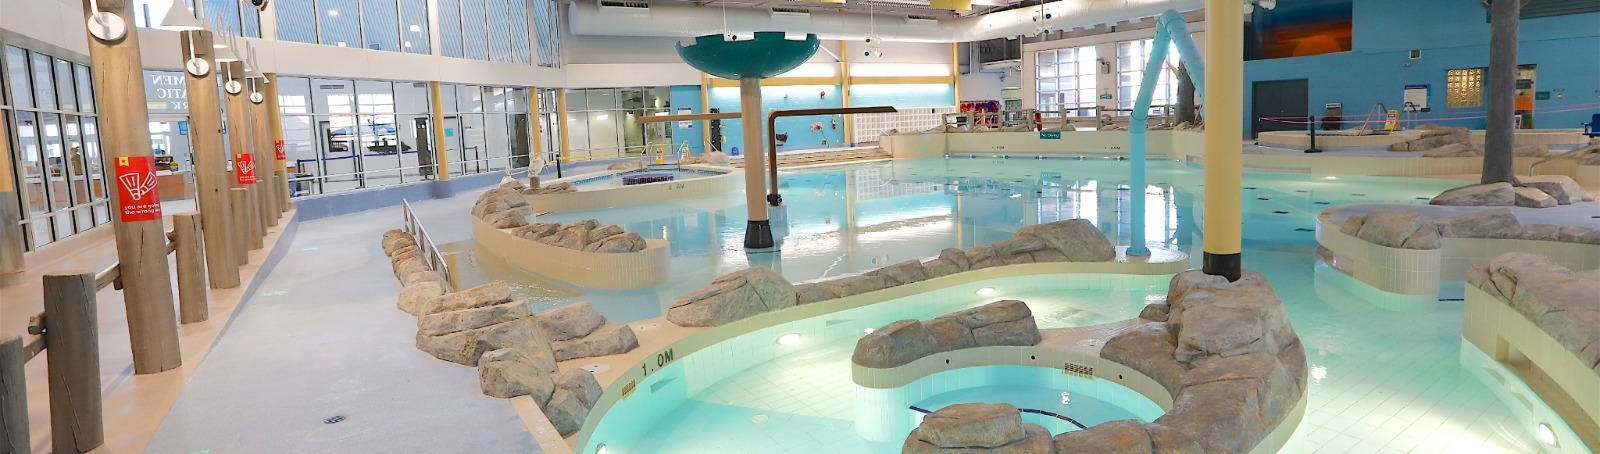 pool at the Family Leisure Centre